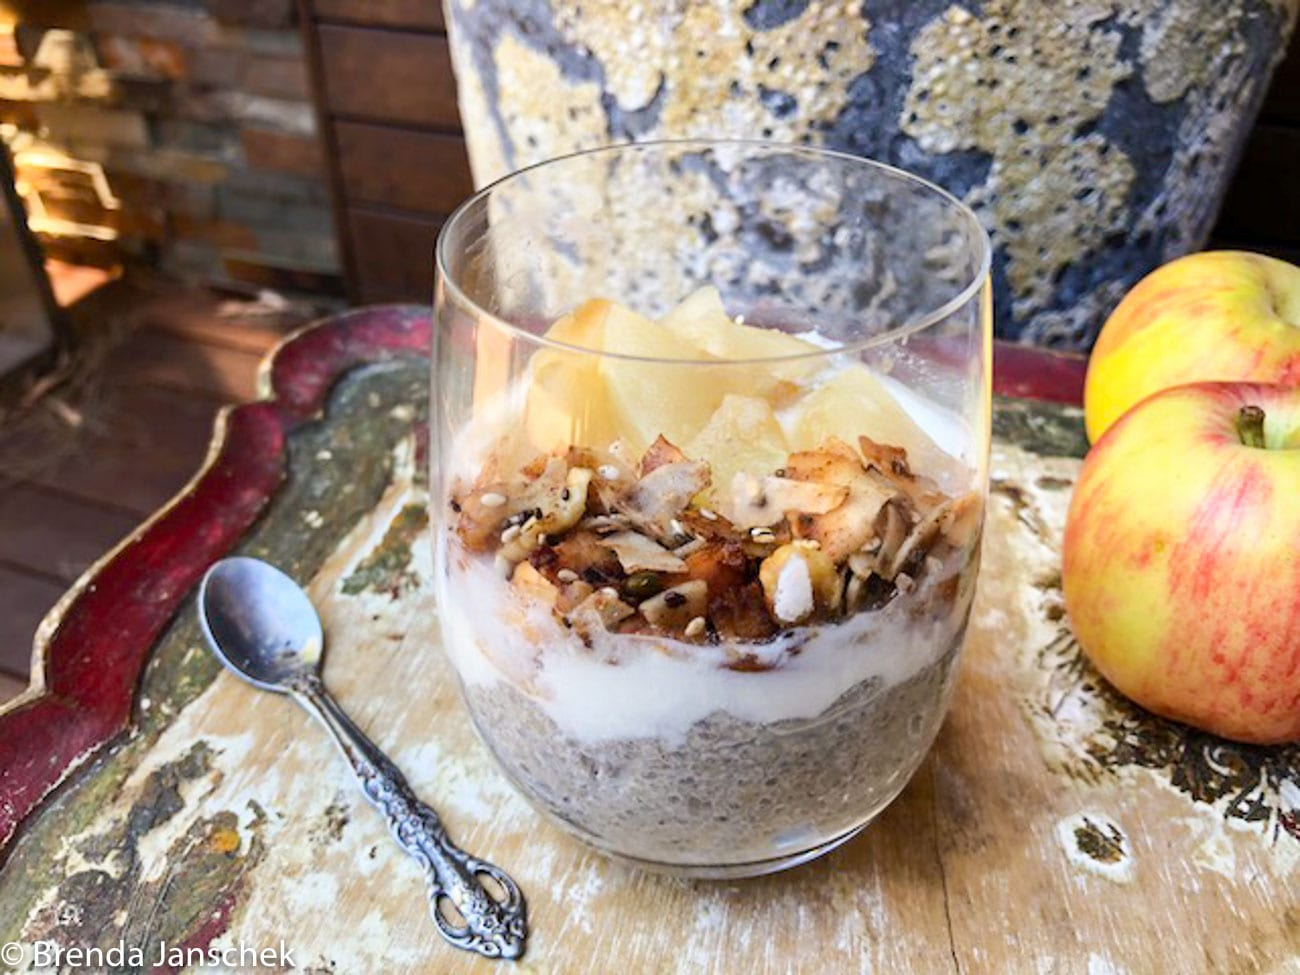 Brenda-Janschek-Recipe-Vanilla -Apple-Chia-Pudding.jpg